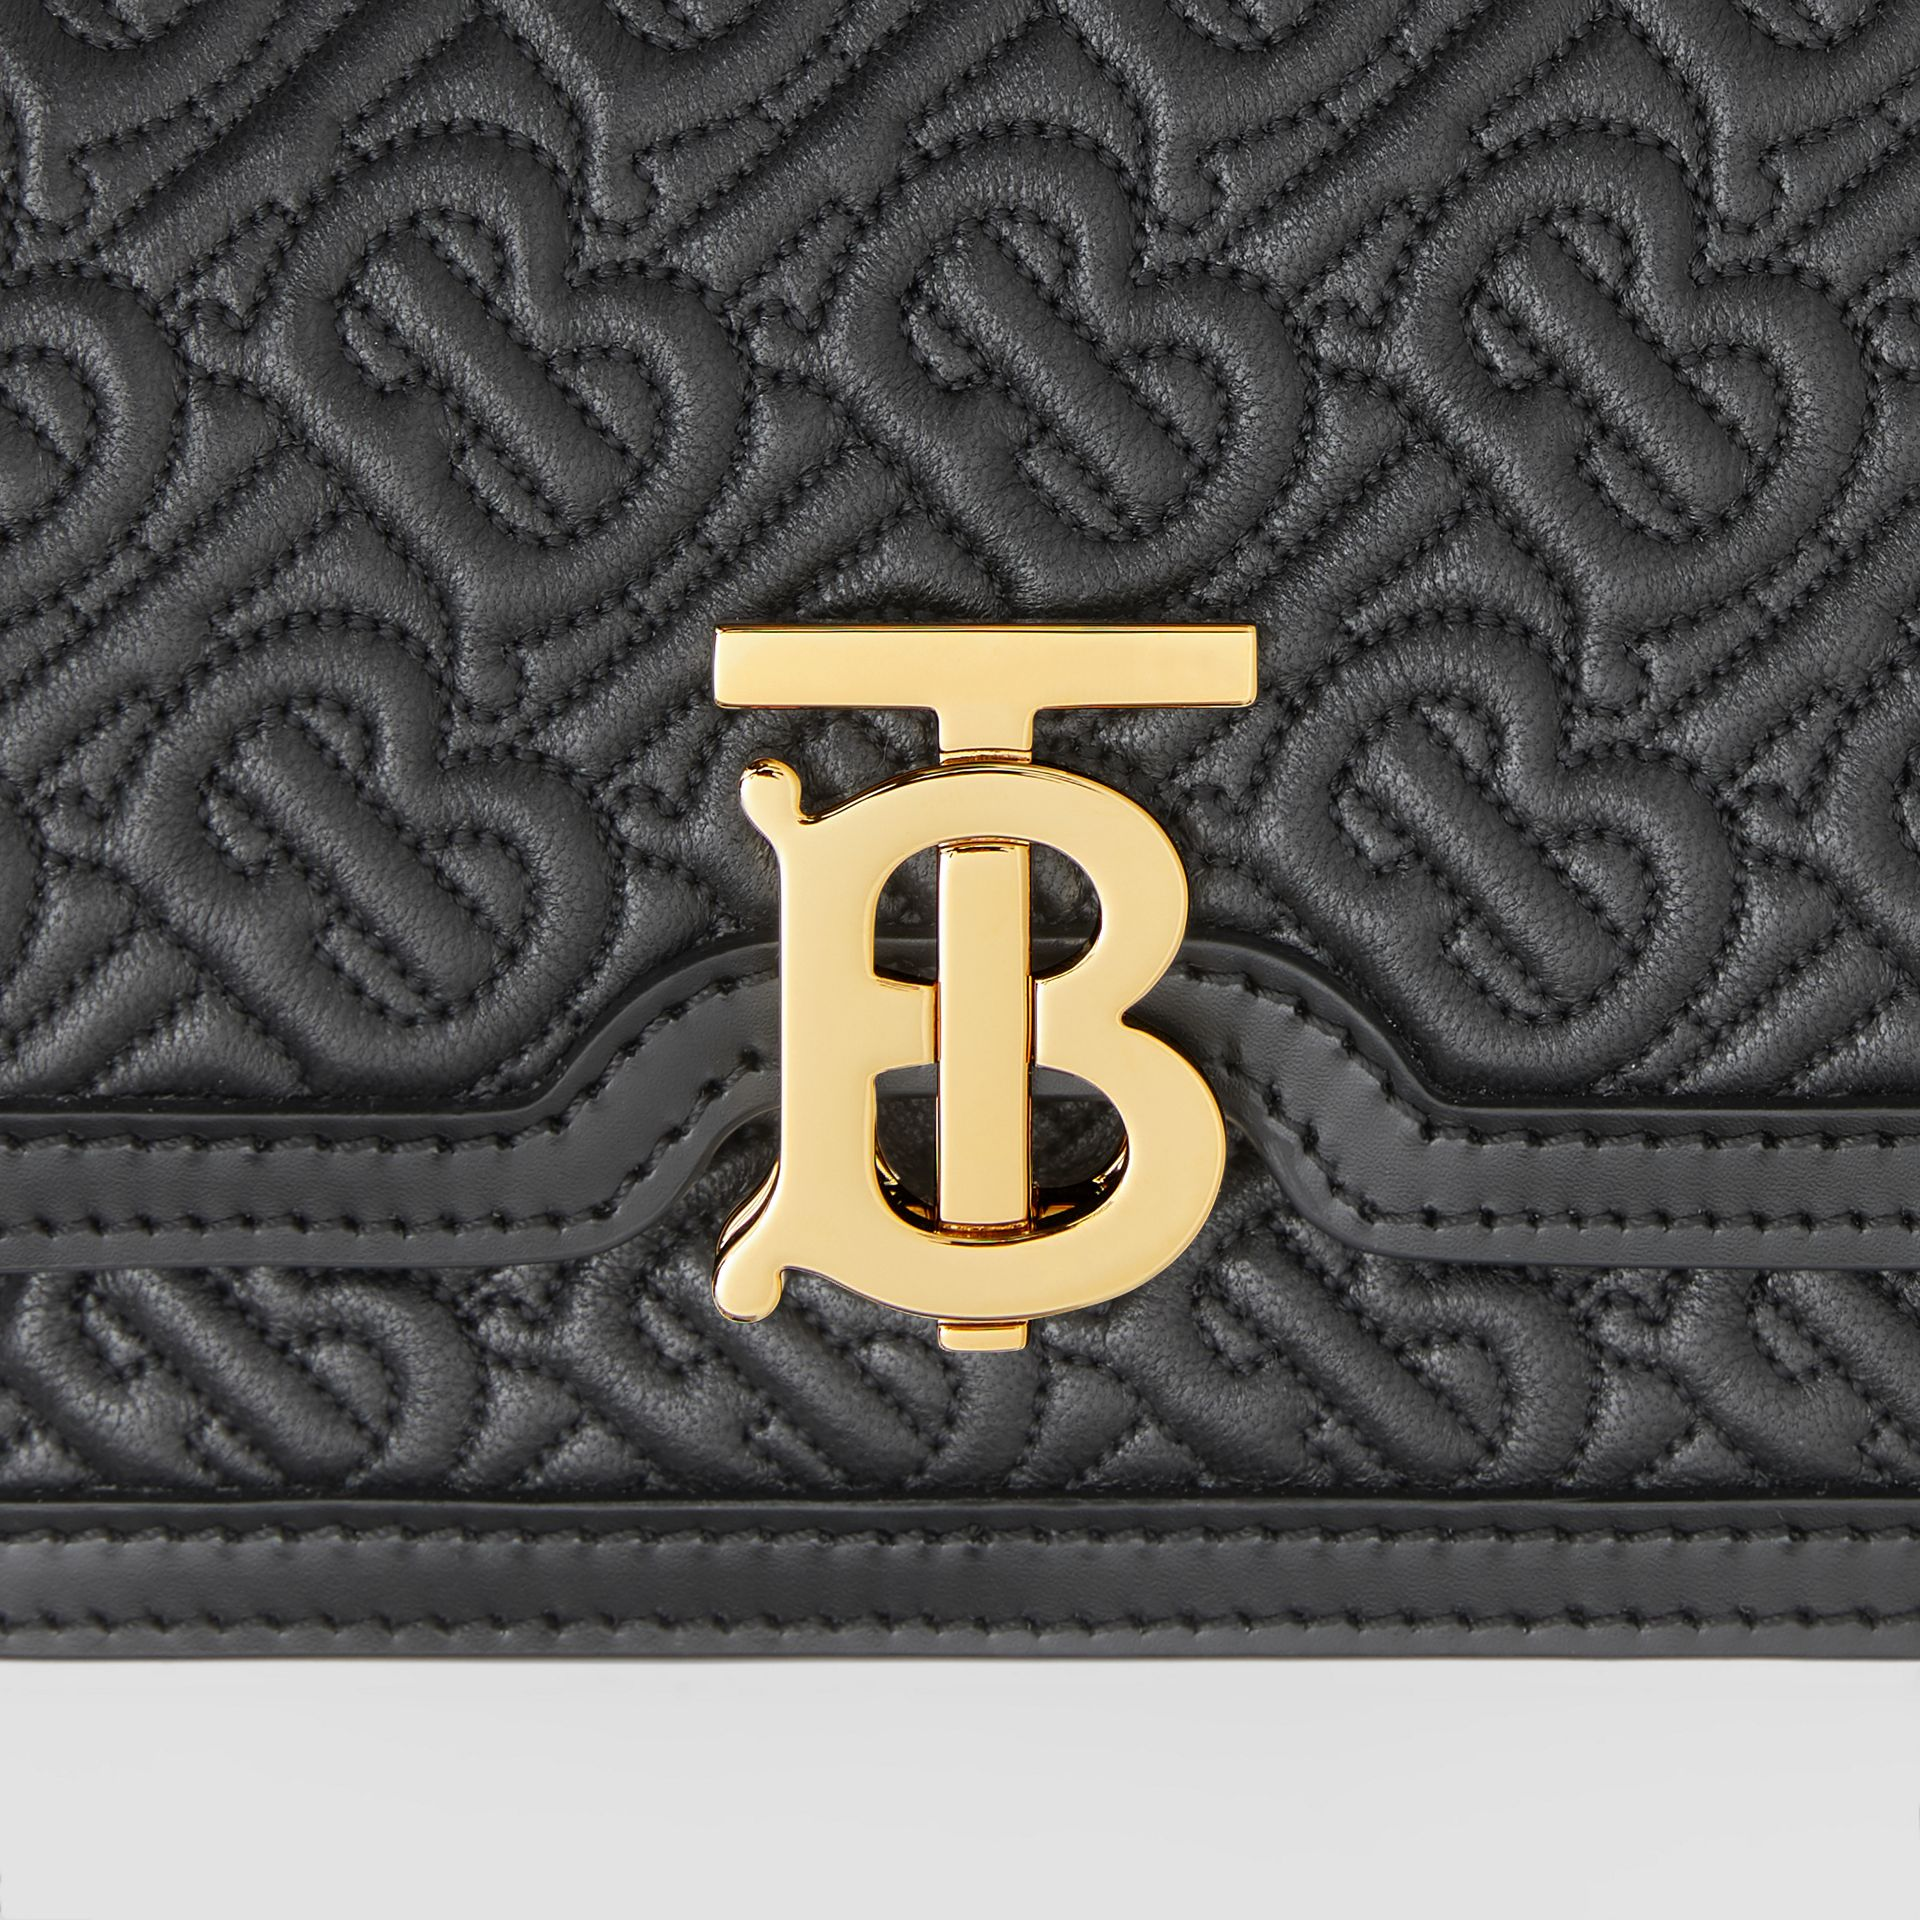 Mini Quilted Monogram Lambskin TB Bag in Black - Women | Burberry - gallery image 1